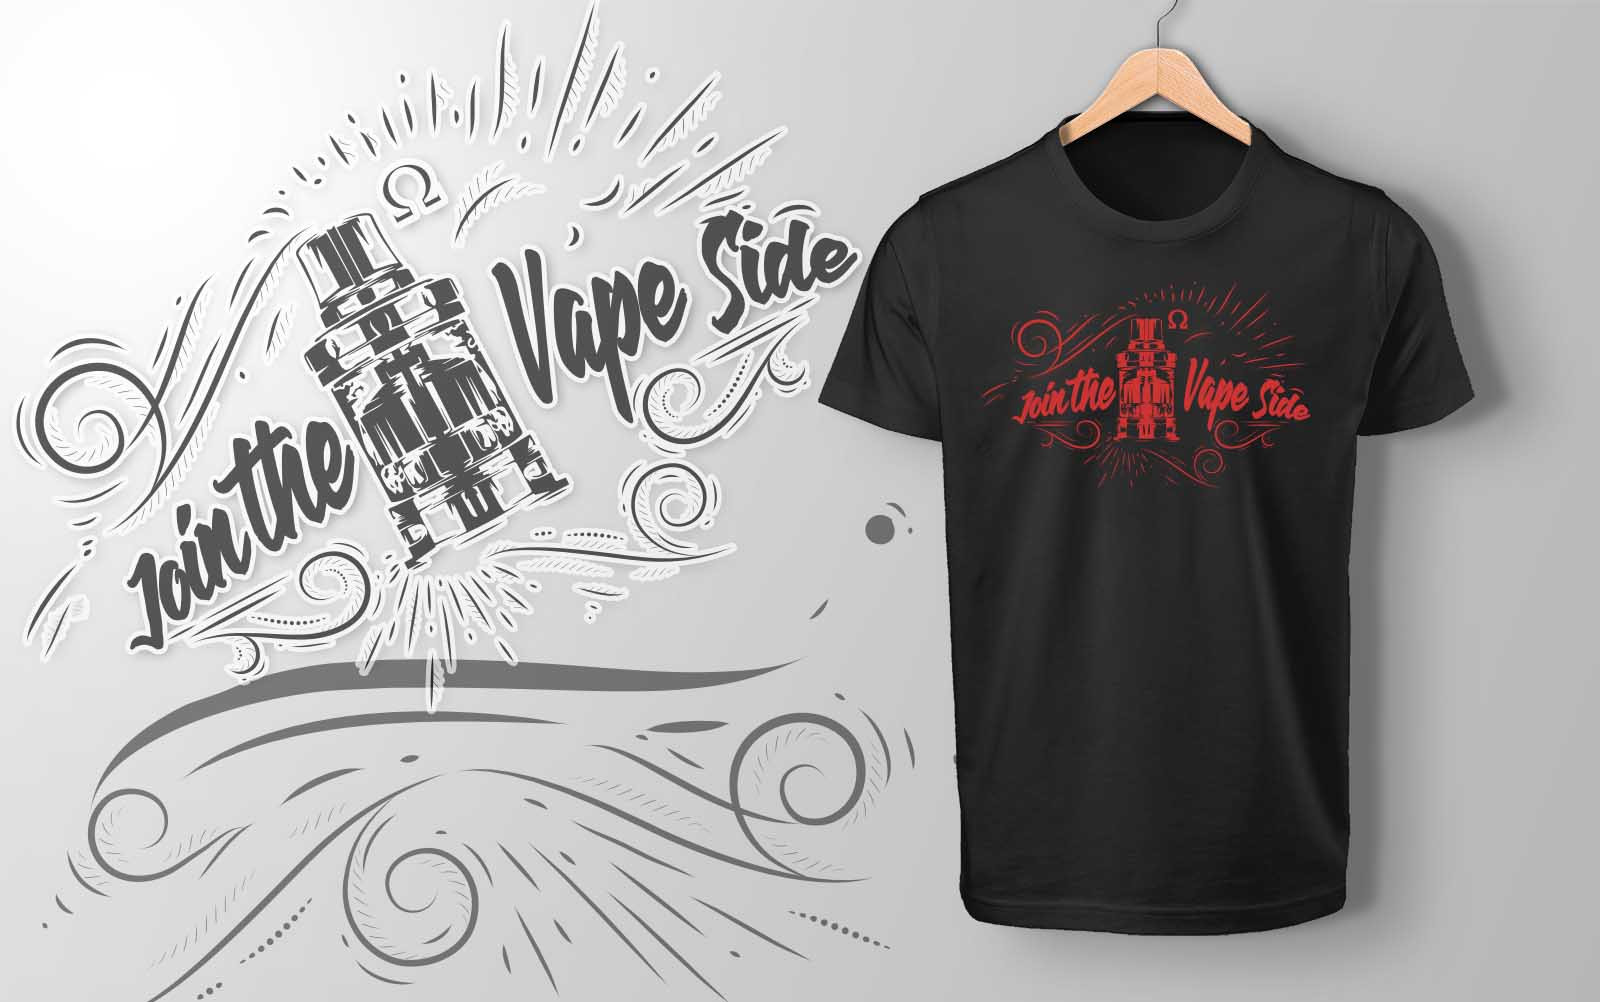 Join the Vape Side Old Style